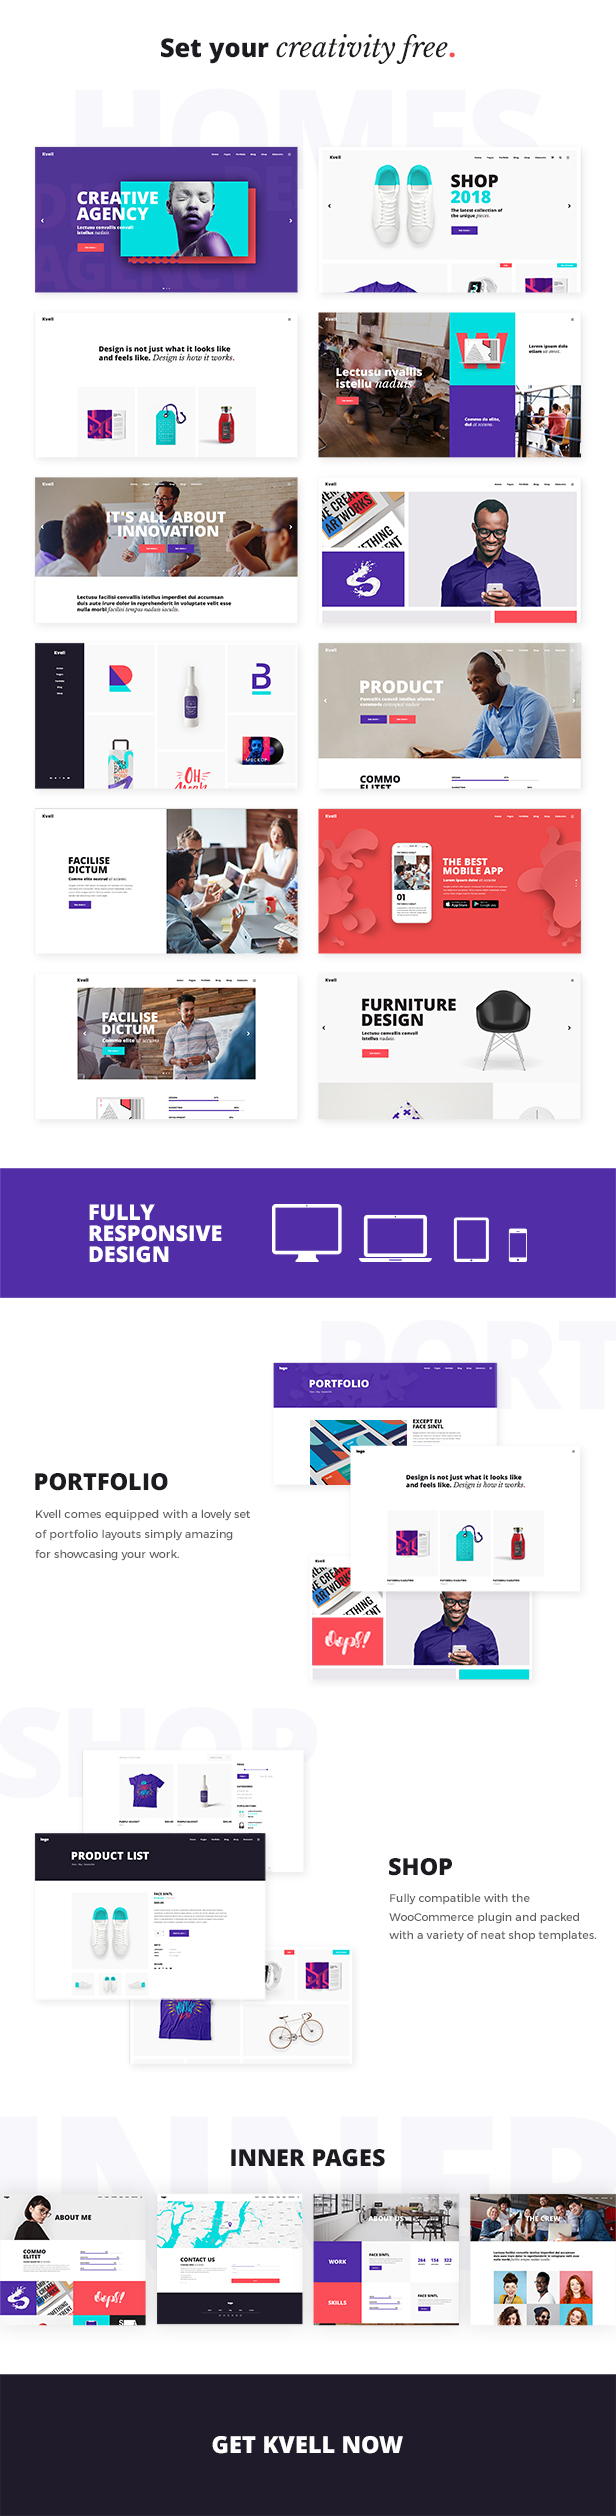 Kvell - A Creative Multipurpose Theme for Freelancers and Agencies - 1